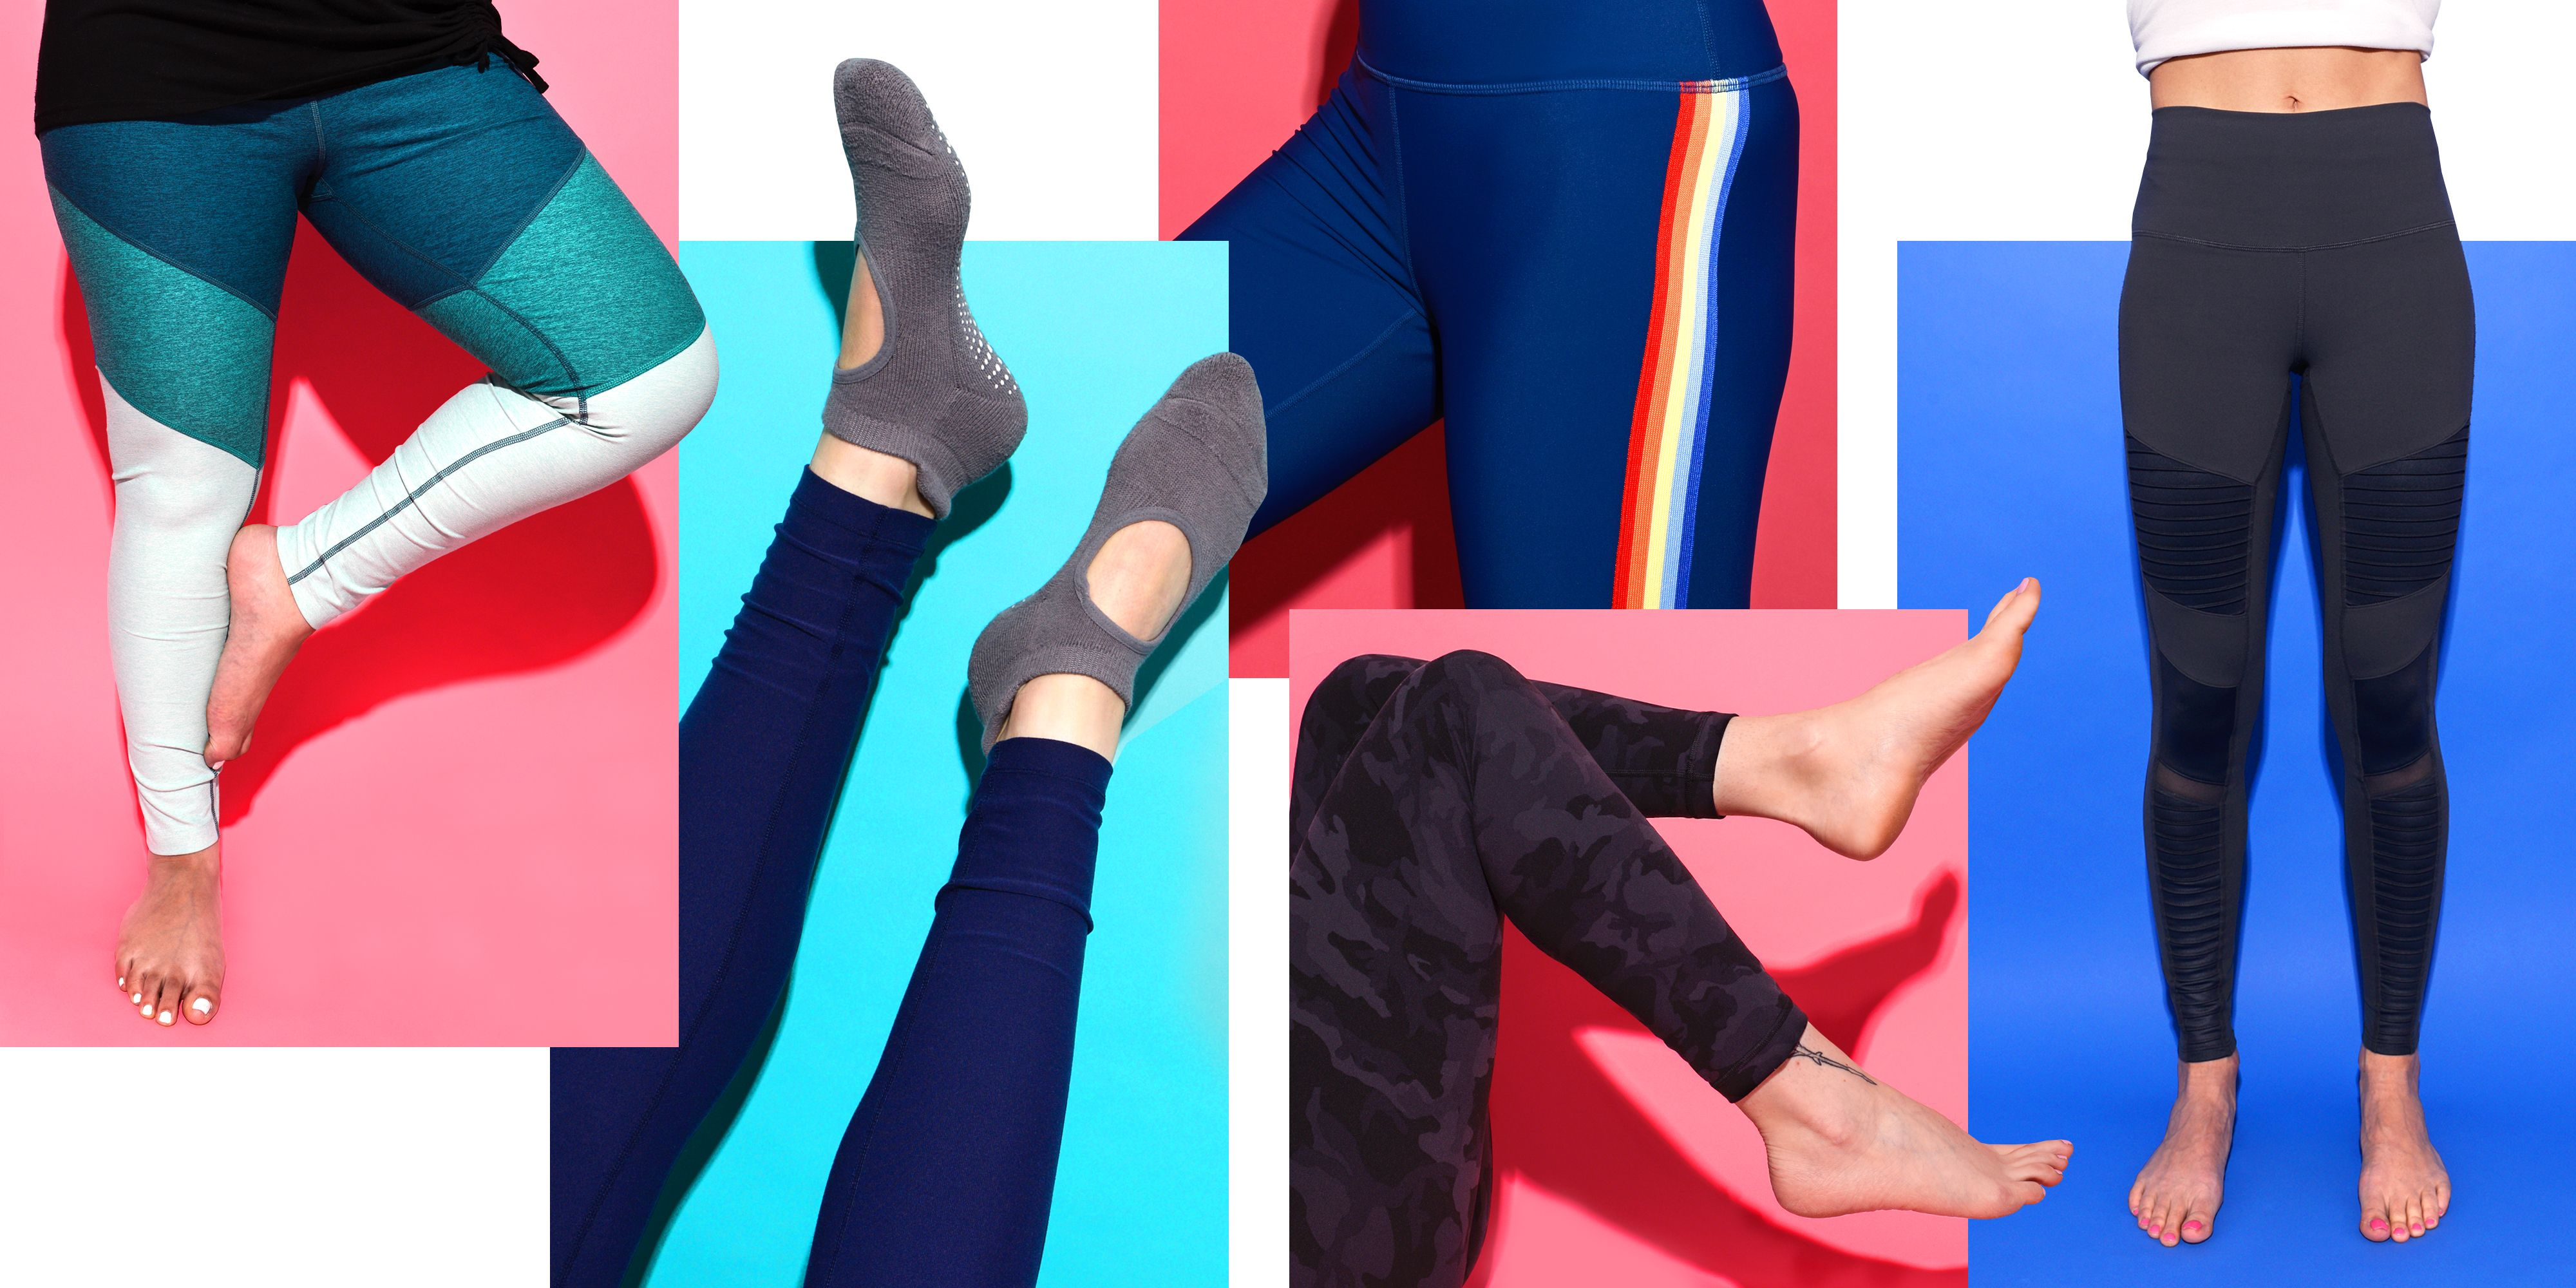 1855eddb47 15 Editors Tested 26 Styles of Women's Yoga Pants — Here Are the Best of  the Best